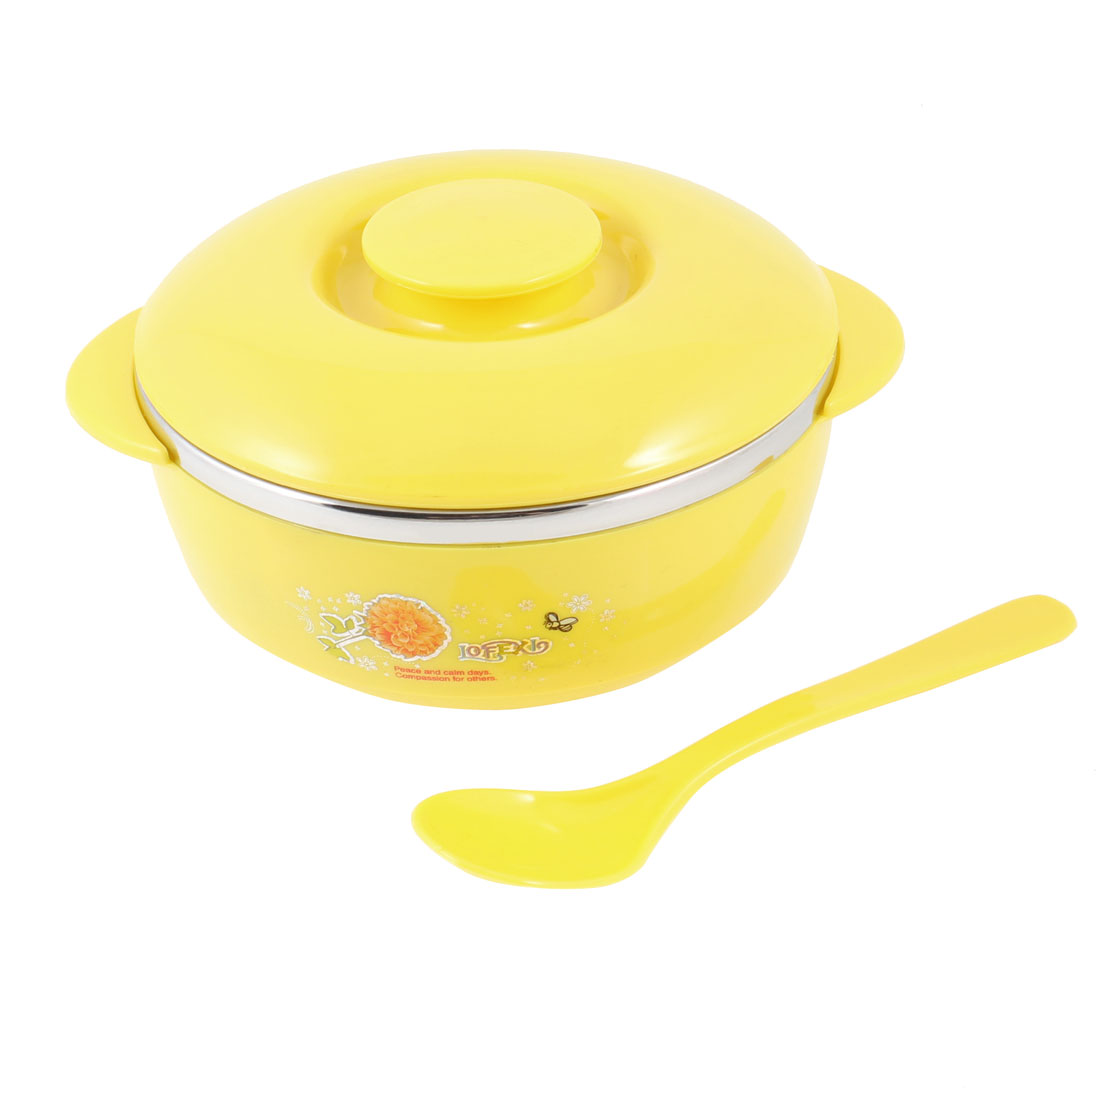 "Yellow Silver Tone Ear Handle 4.9"" Dia Cereal Dessert Dinner Rice Bowl w Cover"